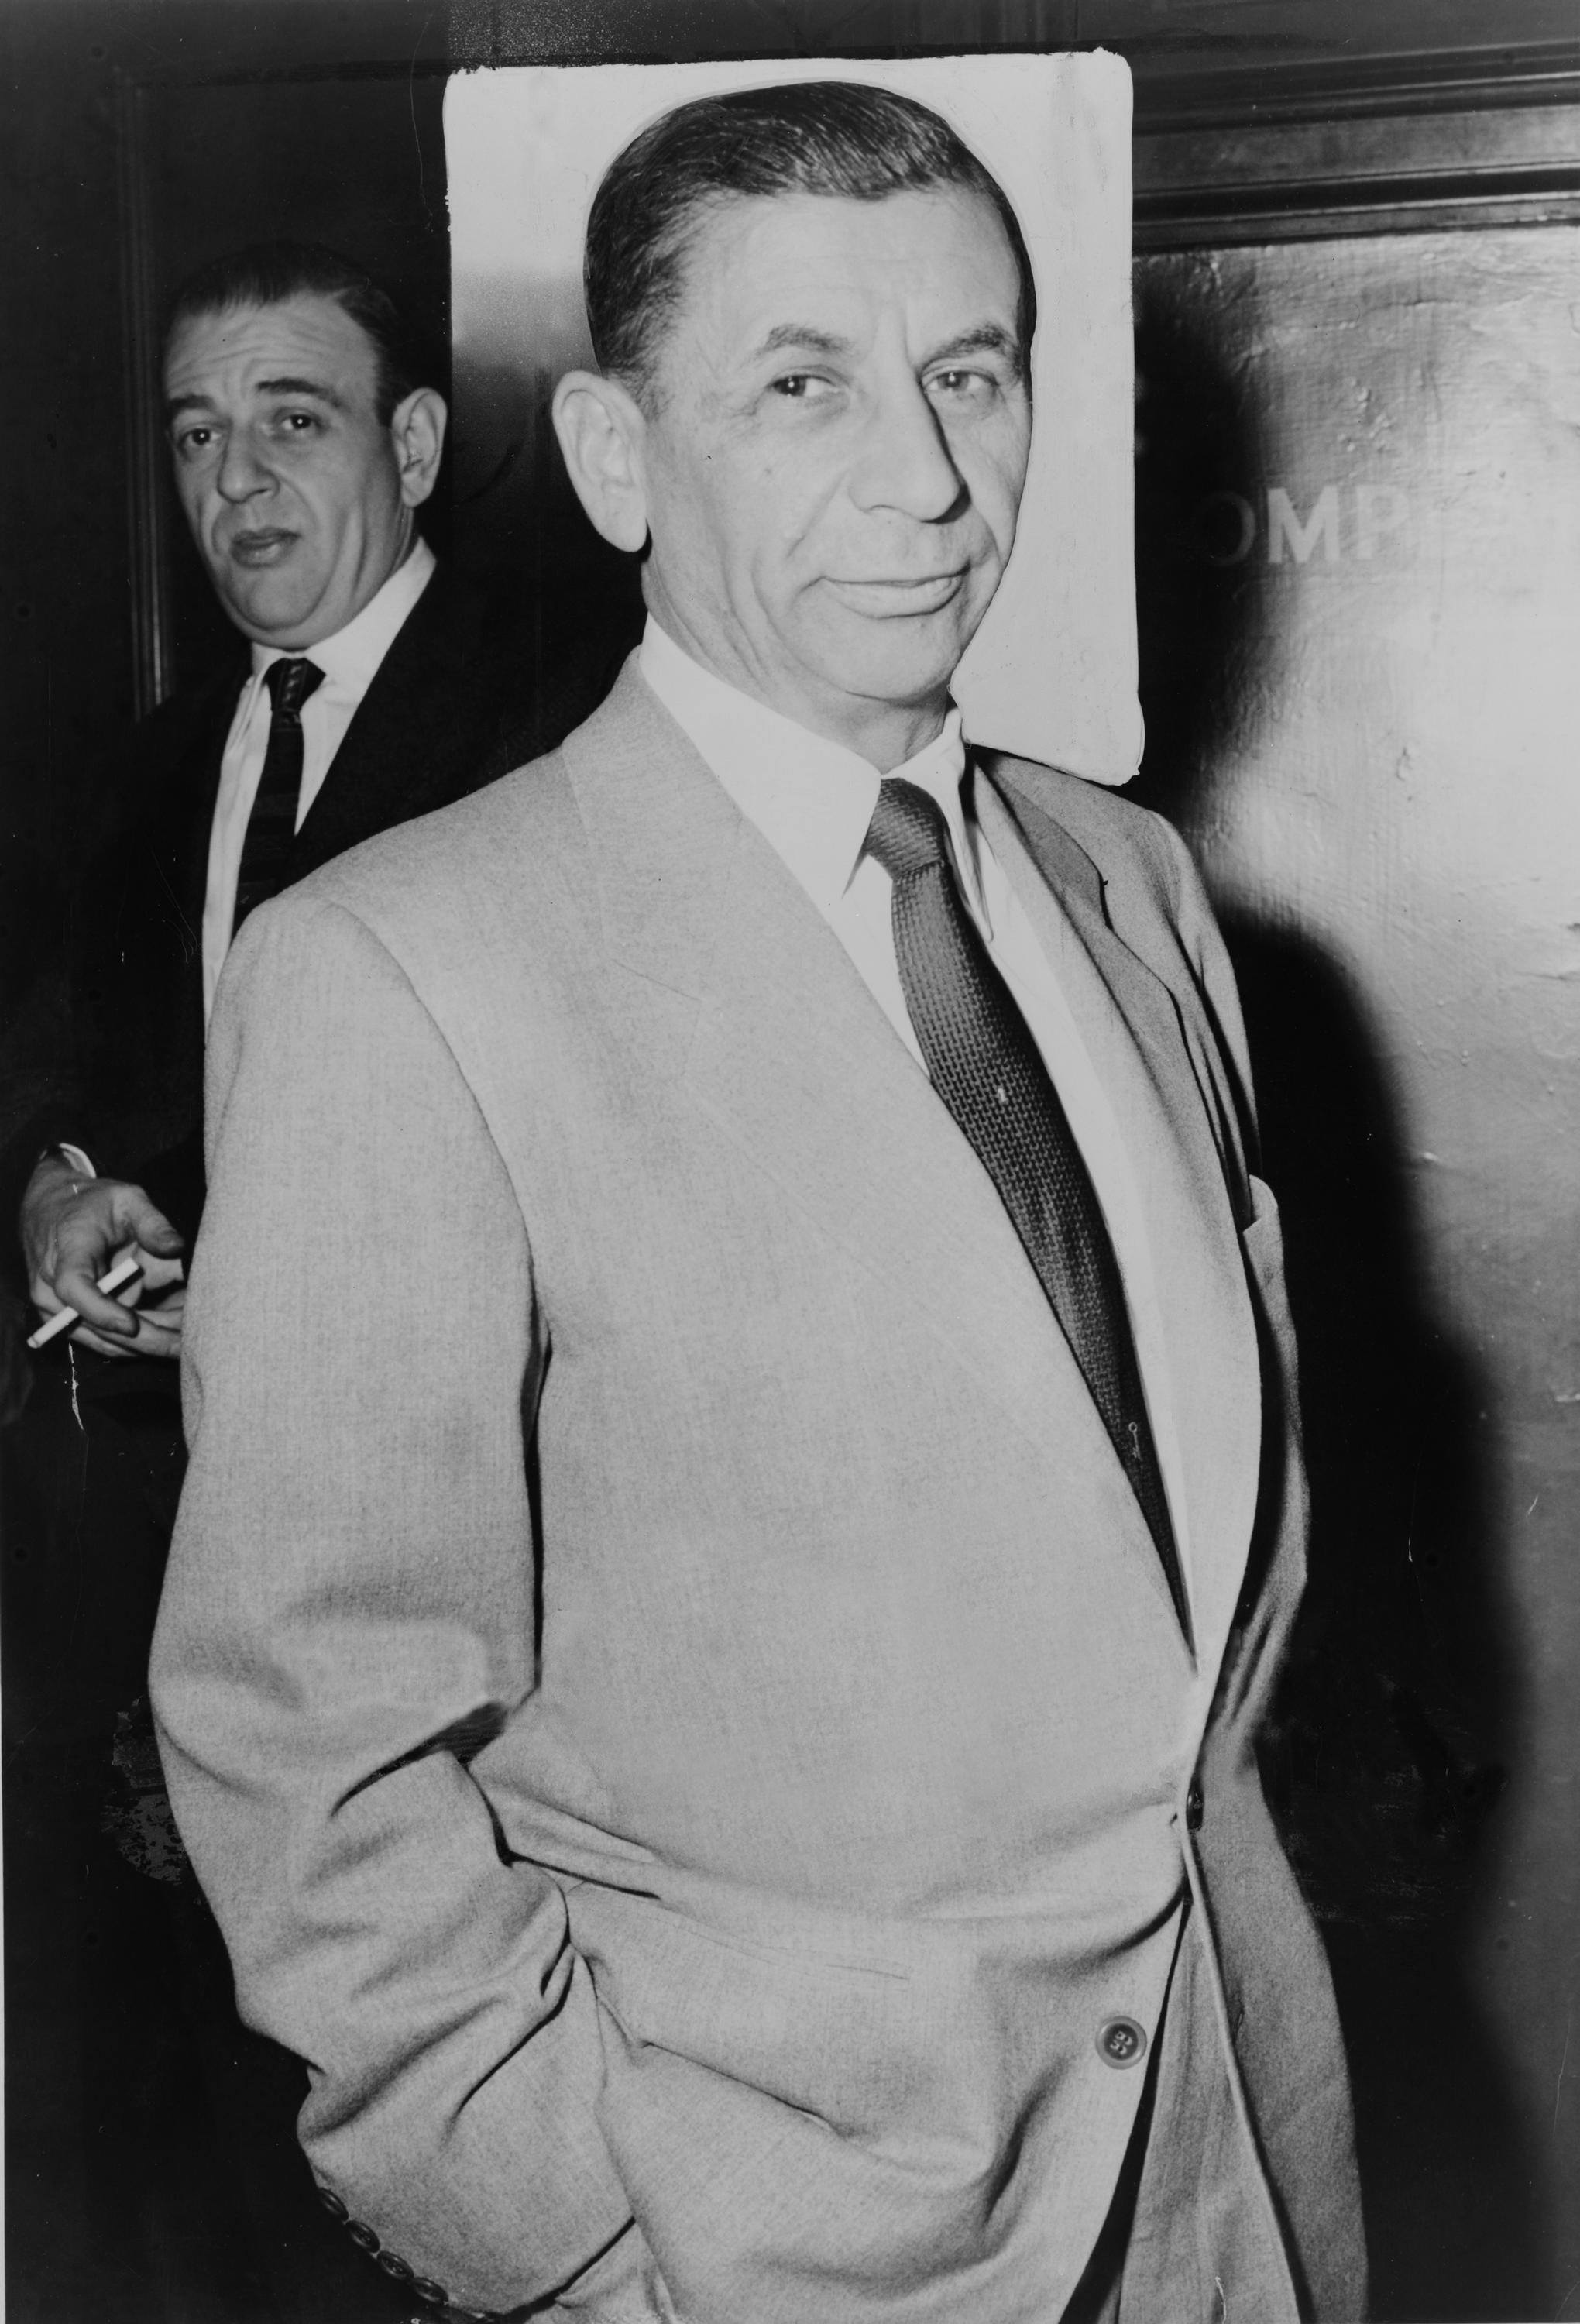 Meyer Lansky walking with hands in pockets